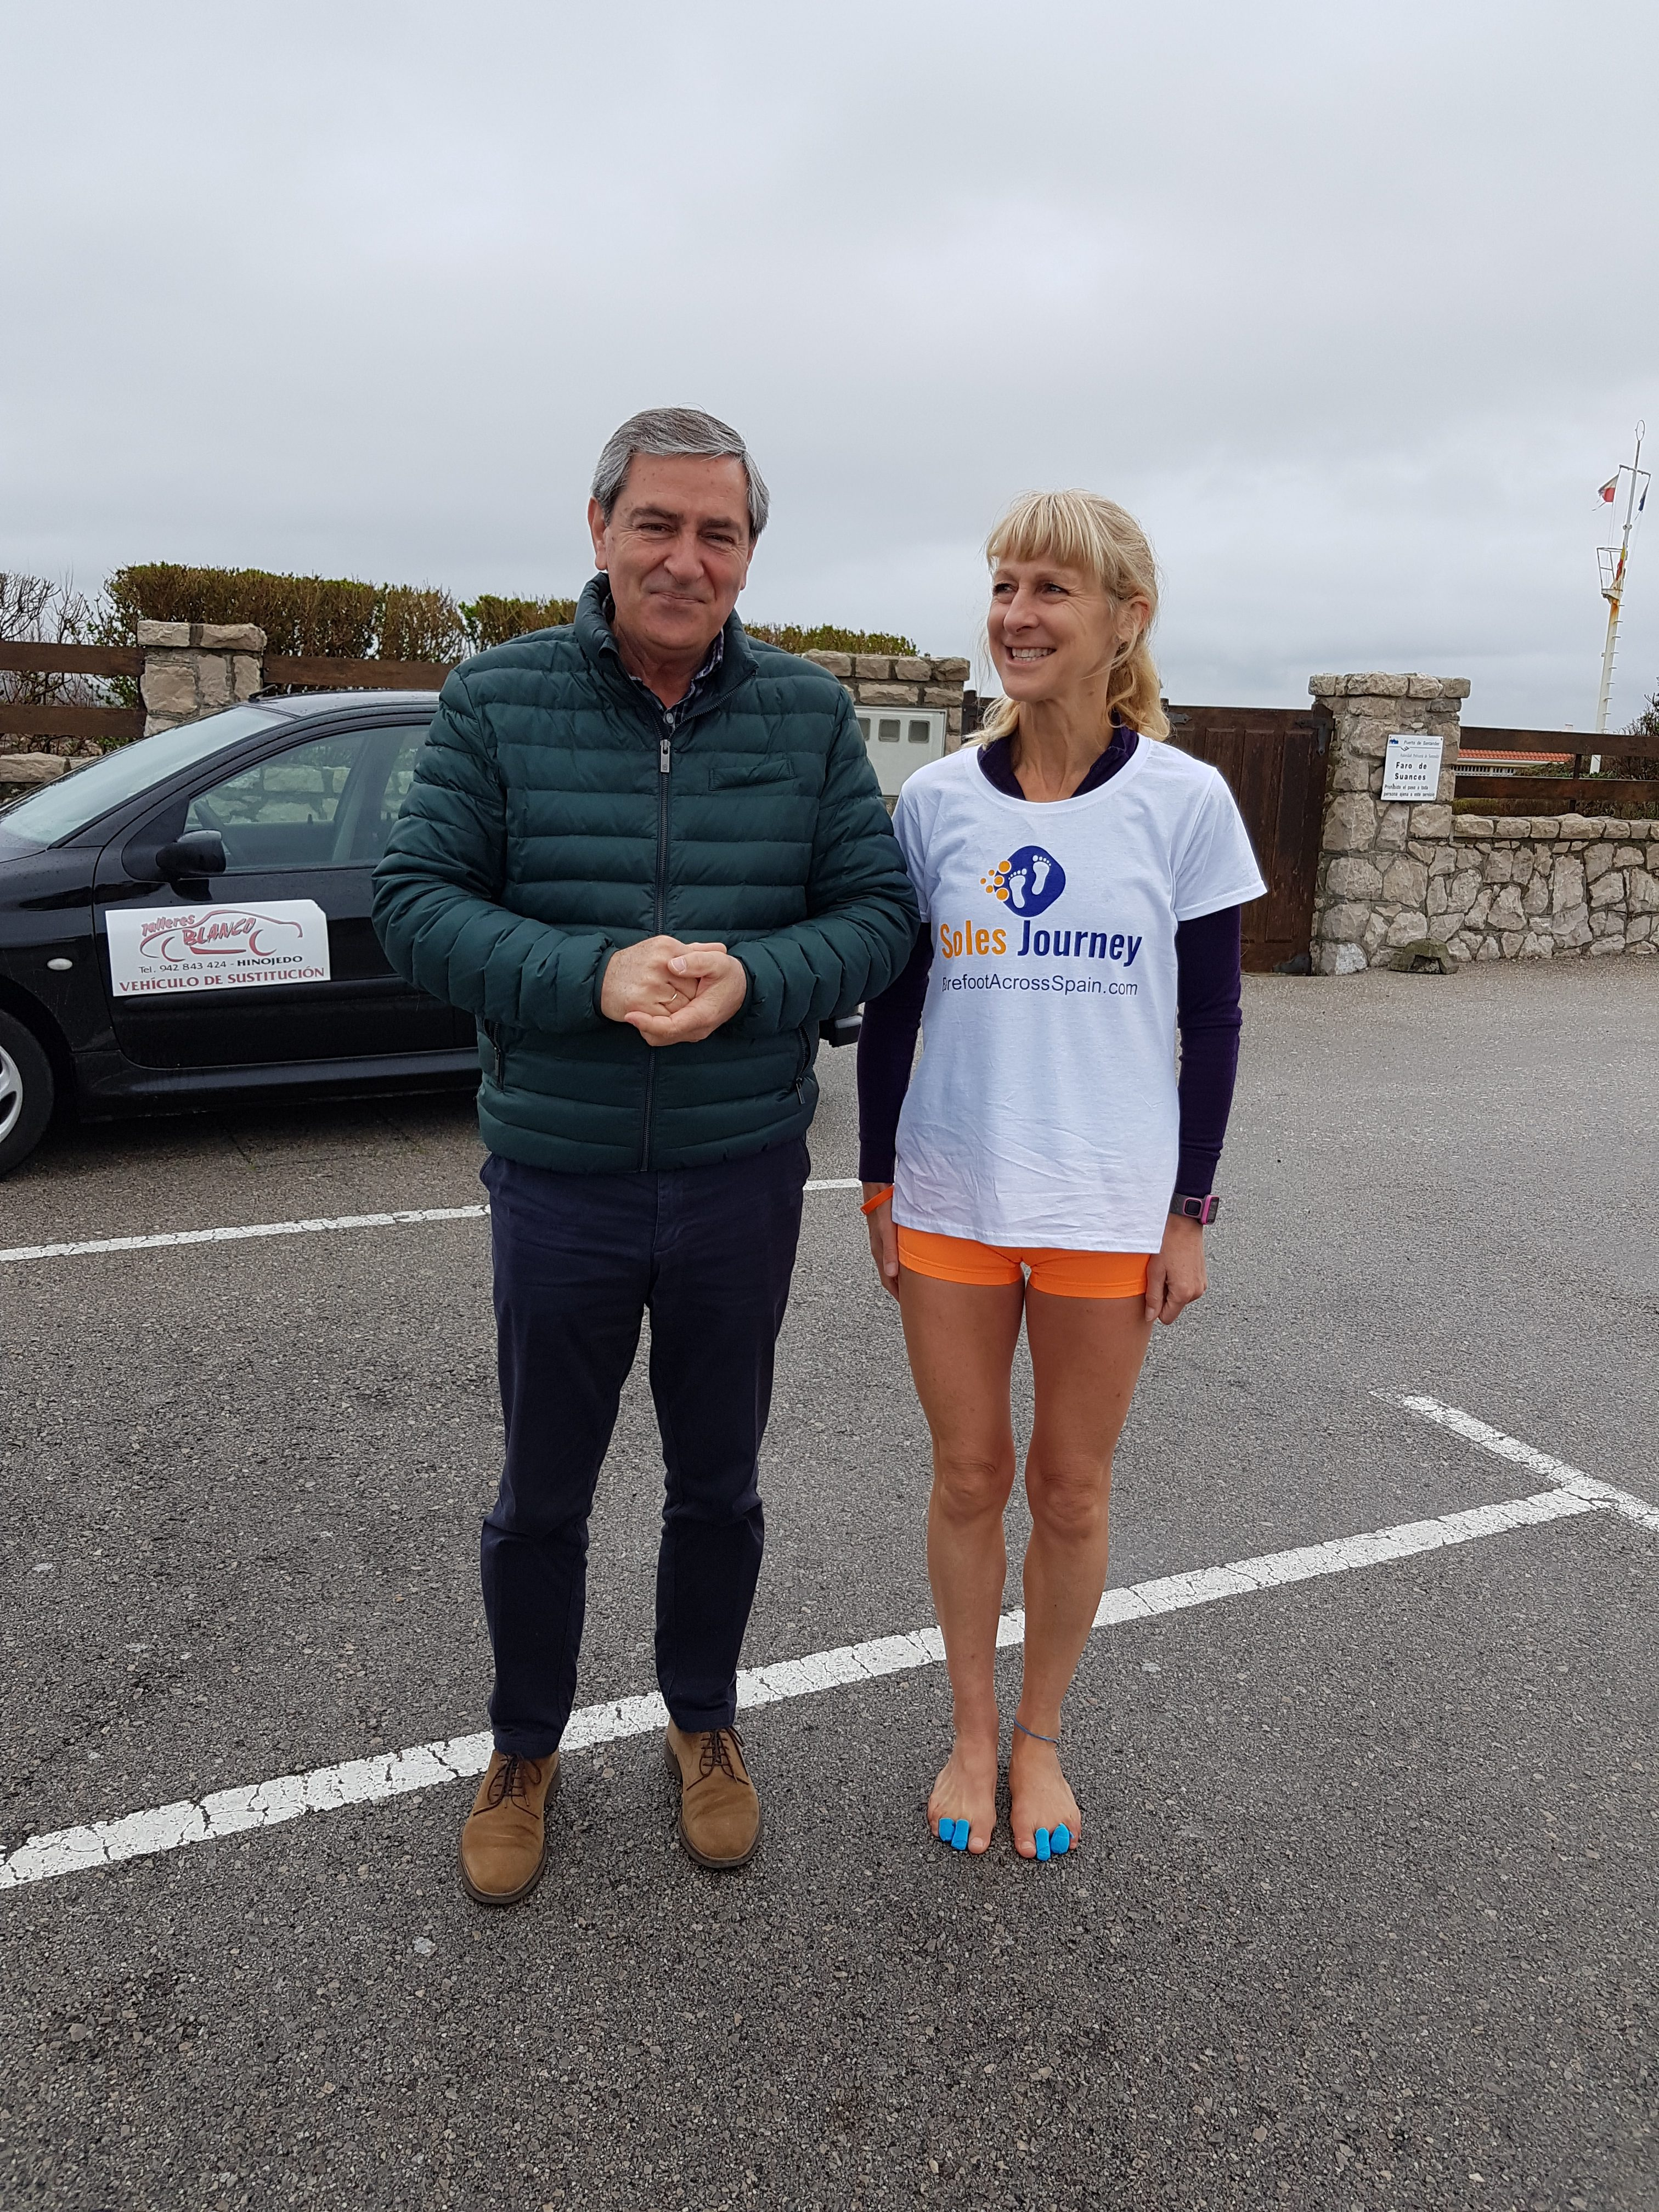 Day 1 – Interview while meeting the Mayor of Suances